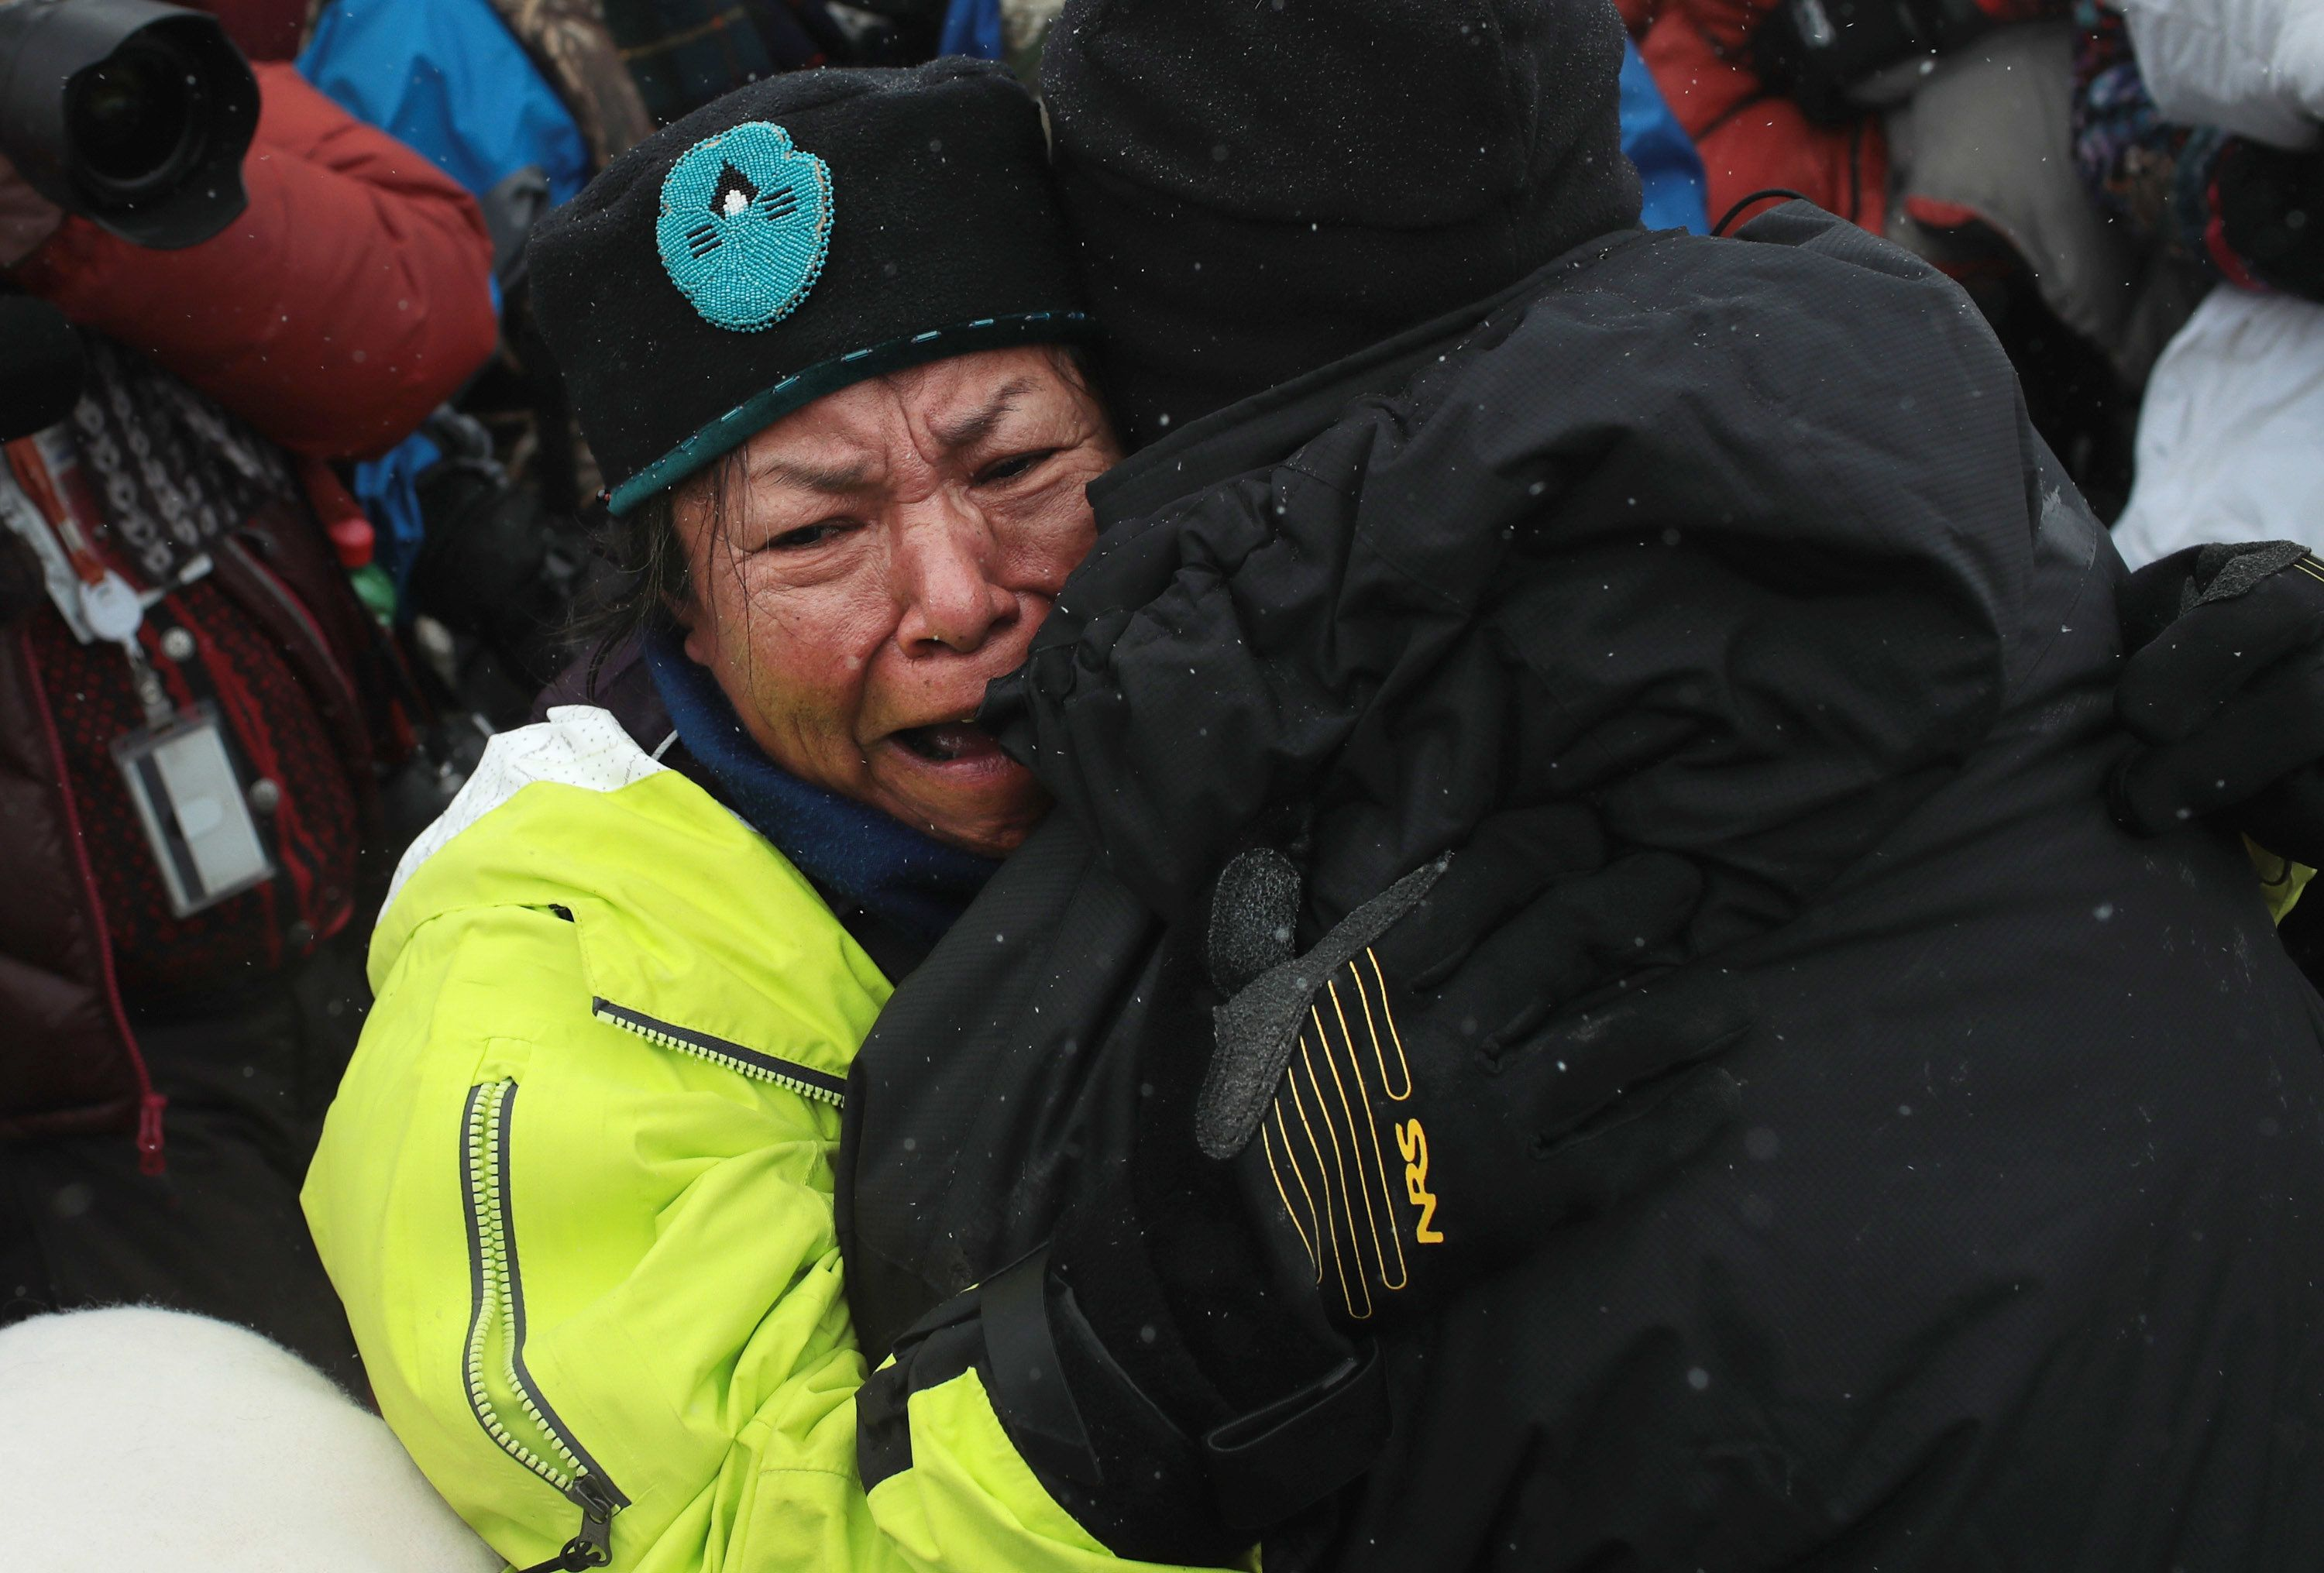 CANNON BALL, ND - DECEMBER 01:  Patty Sam Porter of the Colville tribe in Washington state is welcomed after traveling from the headwaters of the Missouri River in a dugout canoe to join activists at Oceti Sakowin Camp on the edge of the Standing Rock Sioux Reservation on December 1, 2016 outside Cannon Ball, North Dakota. Native Americans and activists from around the country have been gathering at the camp for several months trying to halt the construction of the Dakota Access Pipeline. The proposed 1,172-mile-long pipeline would transport oil from the North Dakota Bakken region through South Dakota, Iowa and into Illinois.  (Photo by Scott Olson/Getty Images)